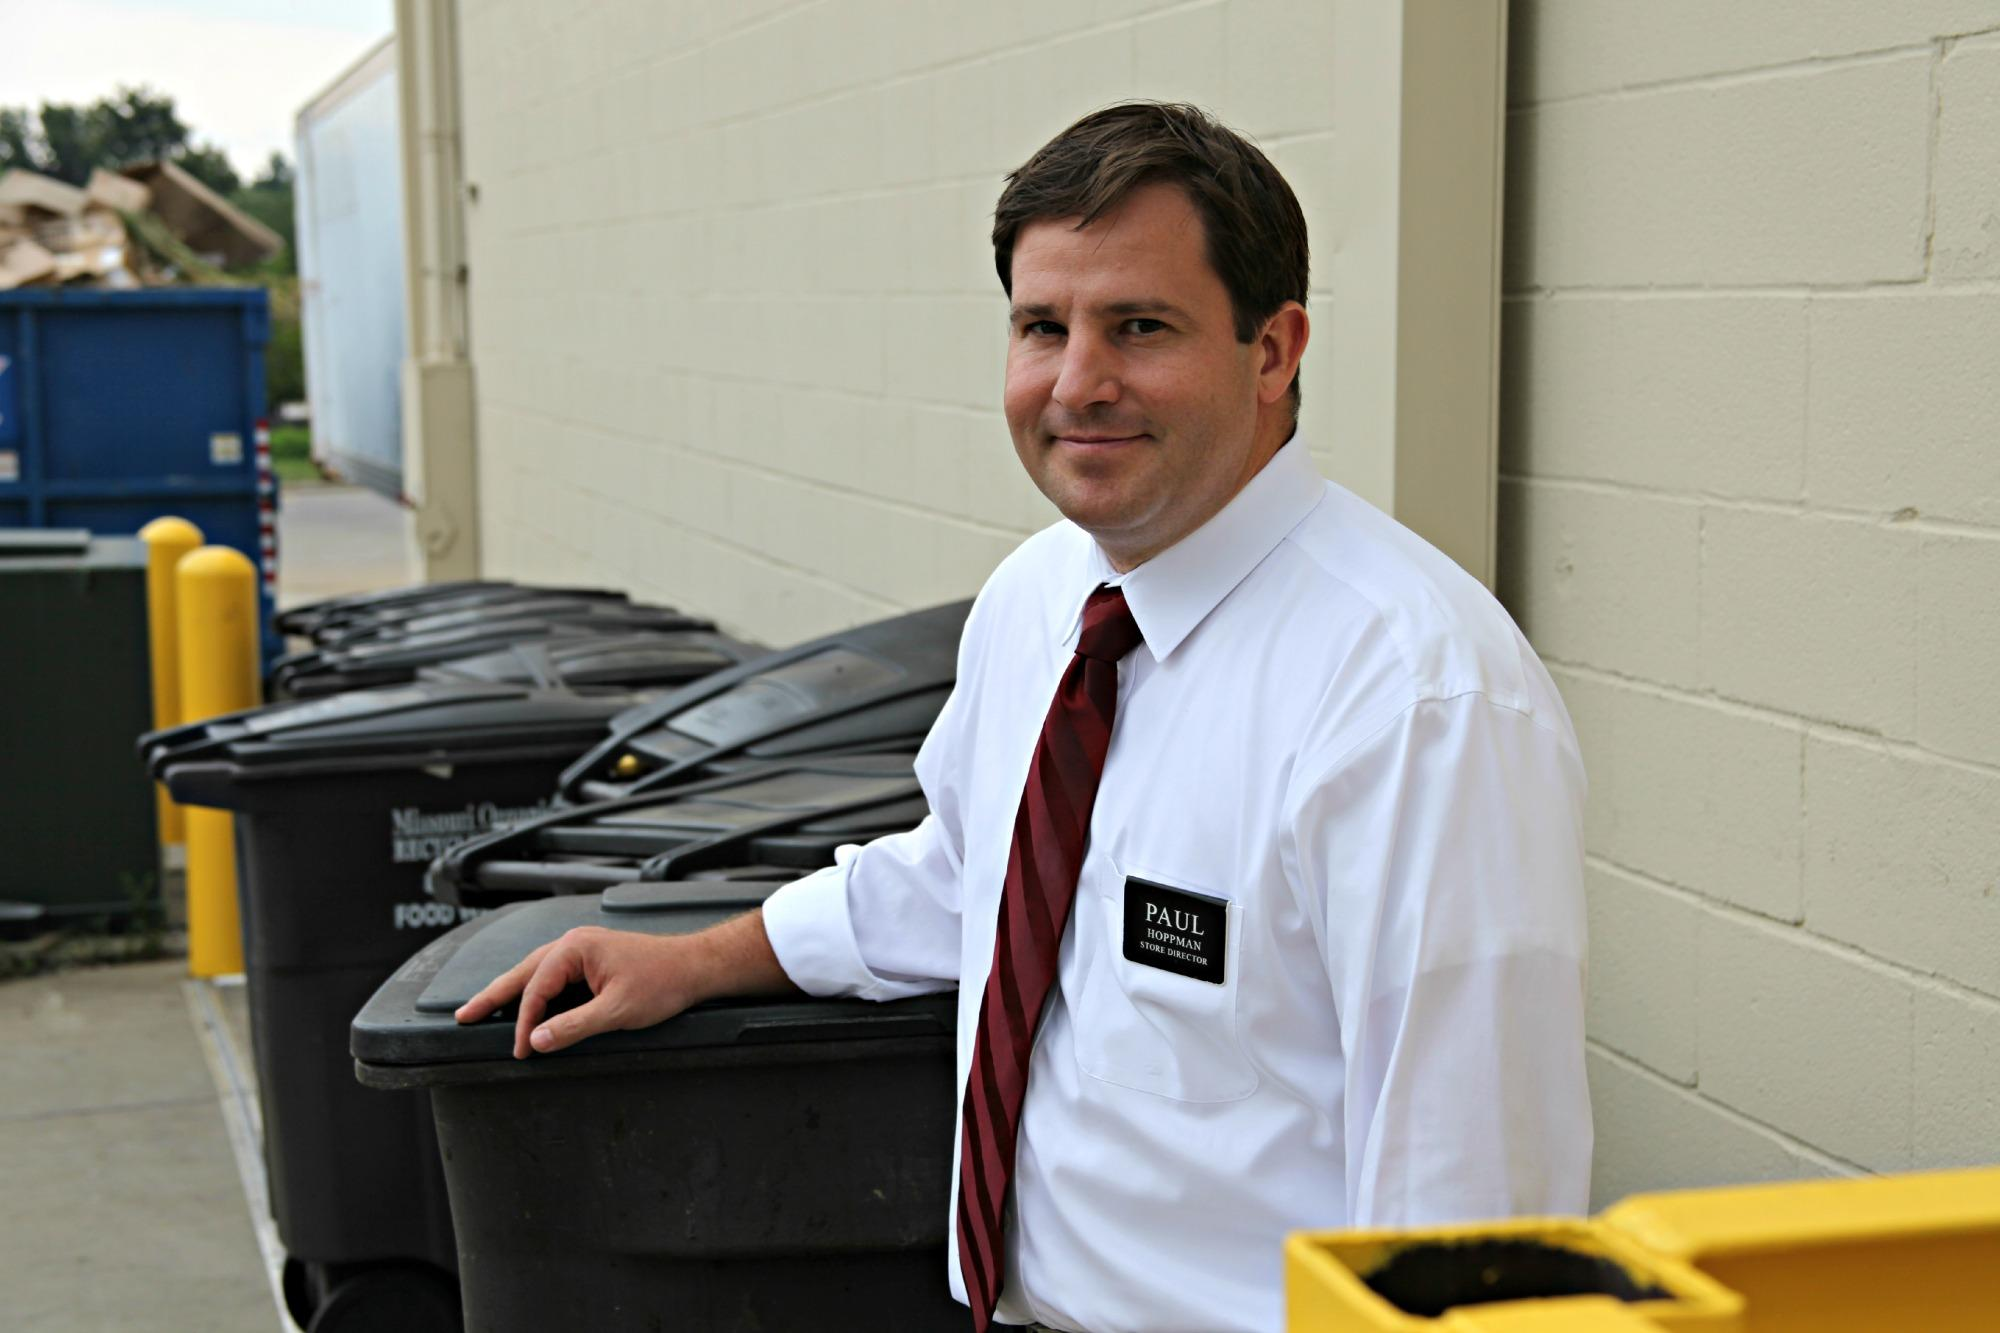 Paul Hoppman, director of a Hy-Vee grocery store in Independence, Mo., owns ten compost bins that get picked up three times a week. Composting has helped his store reduce the amount of food waste it was sending to the landfill.